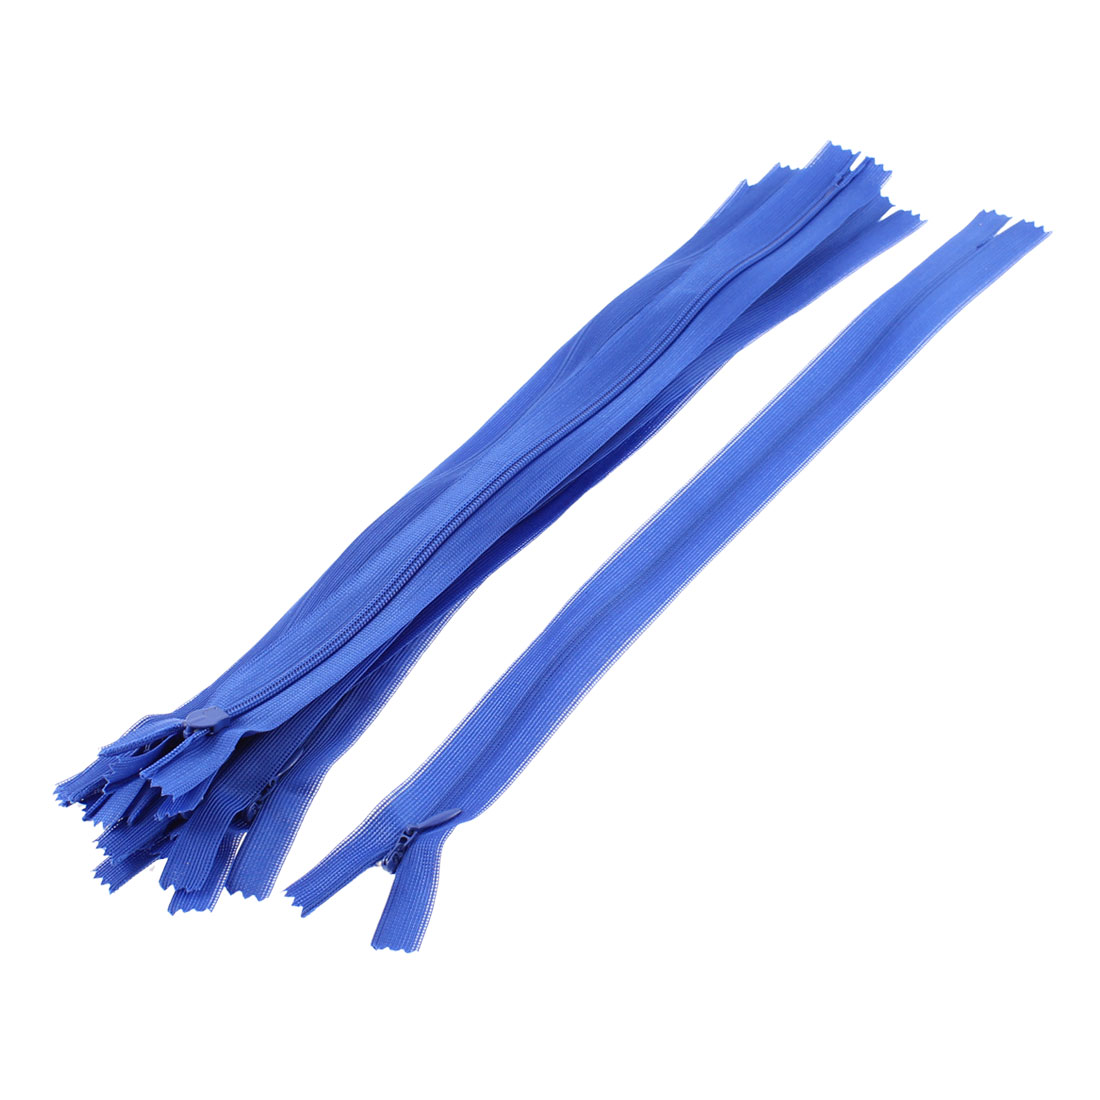 10 Pcs Blue 12-inch Nylon Zippers Zips for Doll Handbag